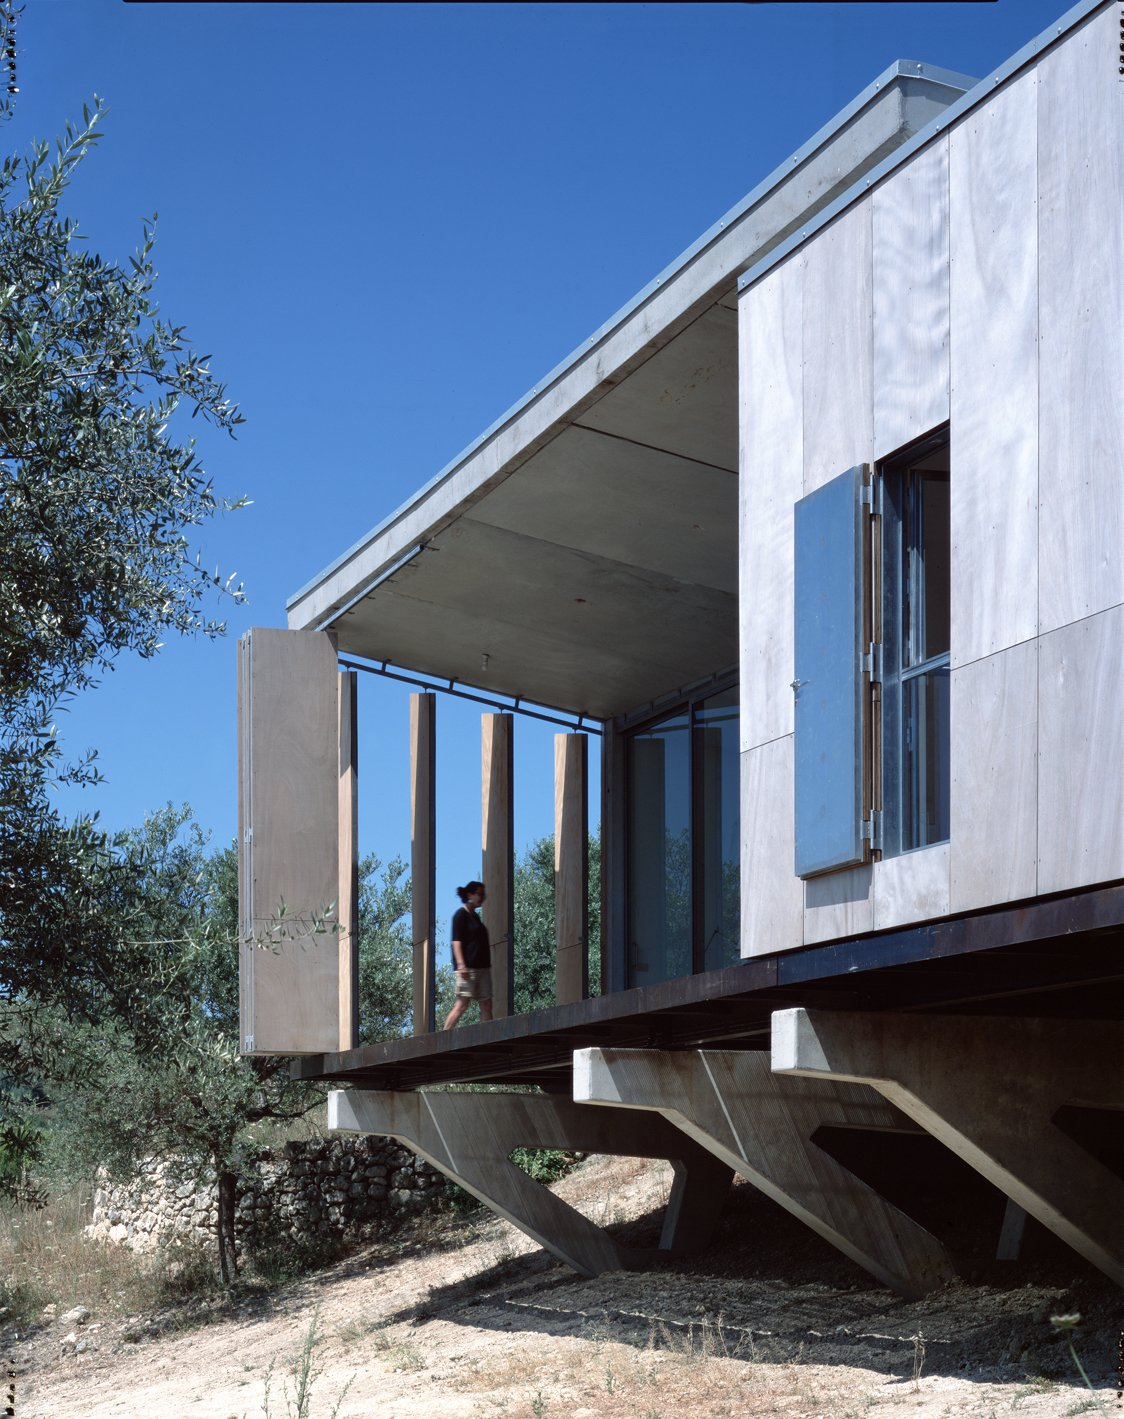 Tagged: Outdoor, Side Yard, Trees, Hardscapes, Small Patio, Porch, Deck, and Shrubs. Stay in a Minimalist Villa in the Sicilian Countryside, Complete With Sea Views - Photo 12 of 12